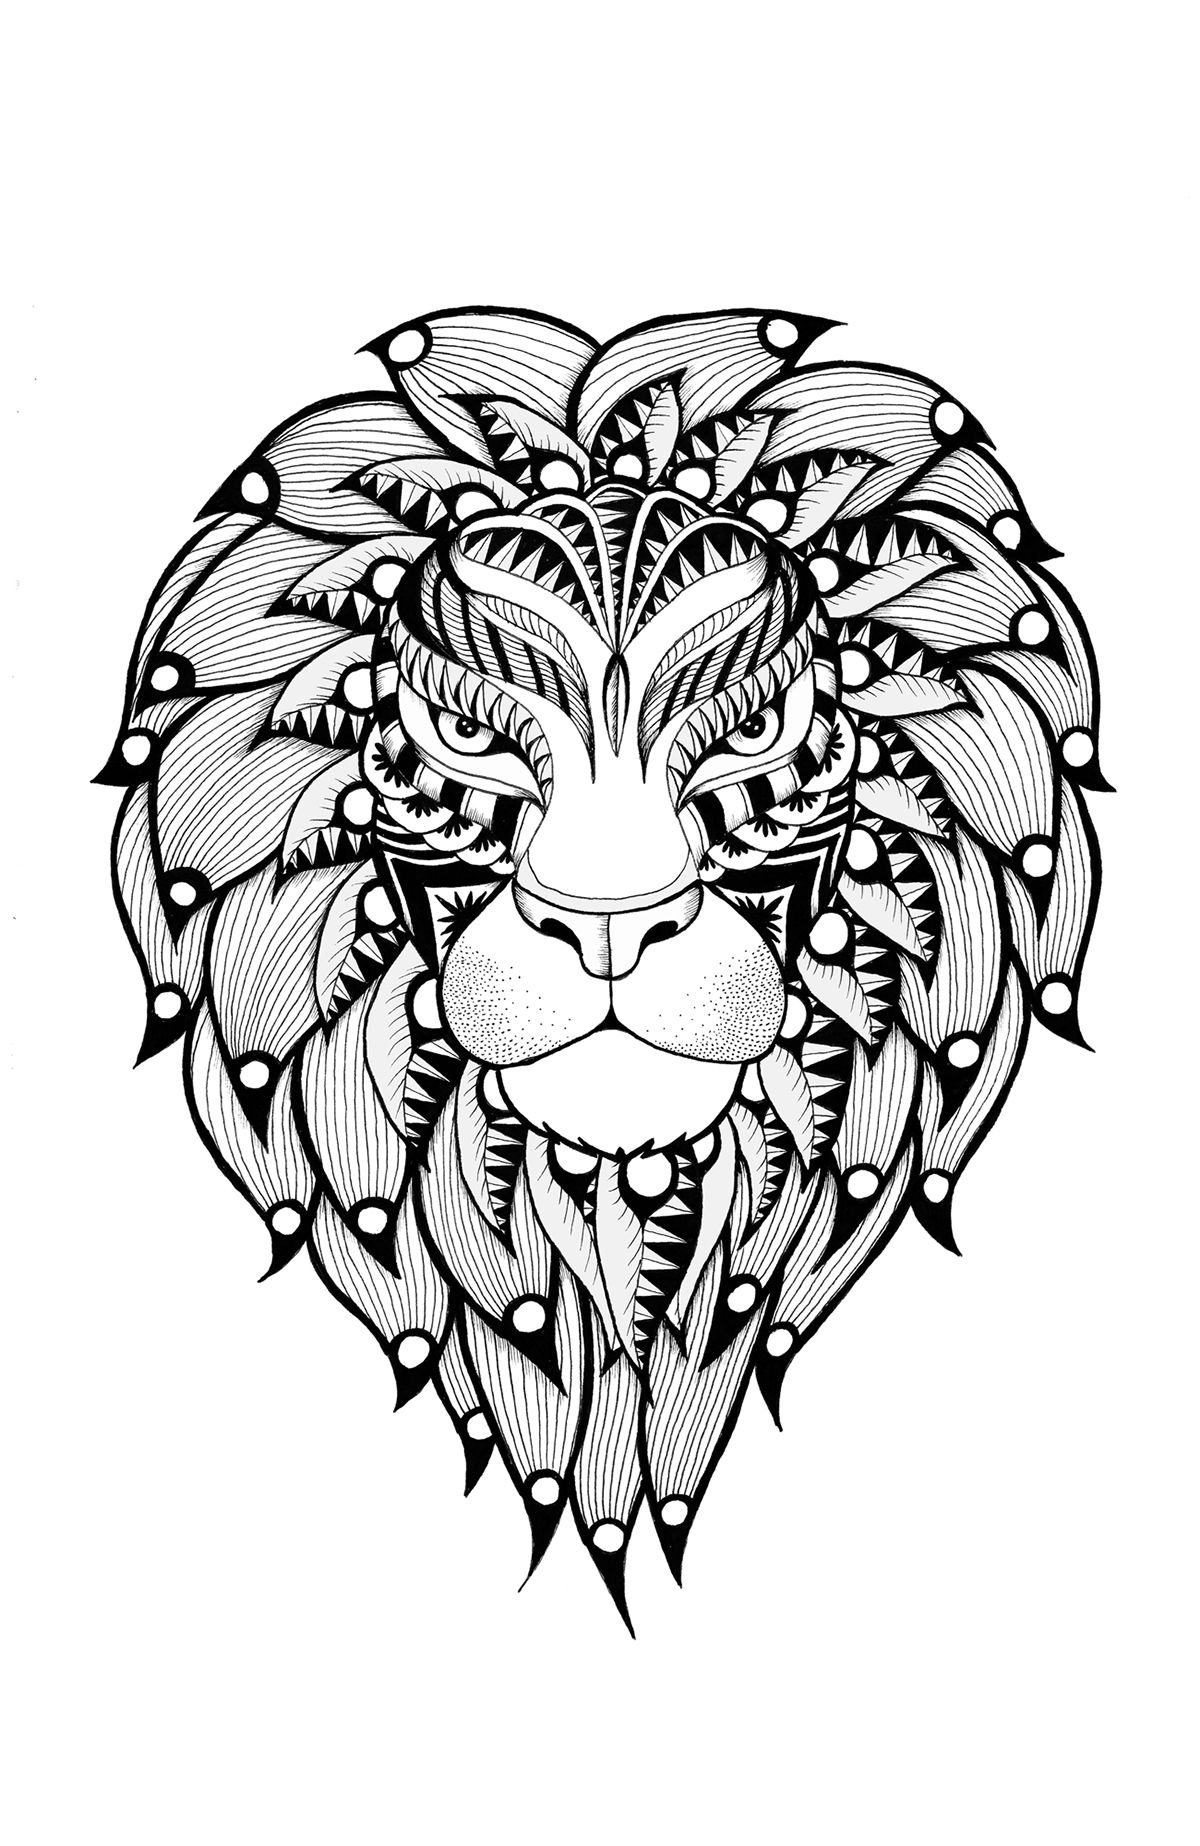 Wild animals coloring pages on Behance